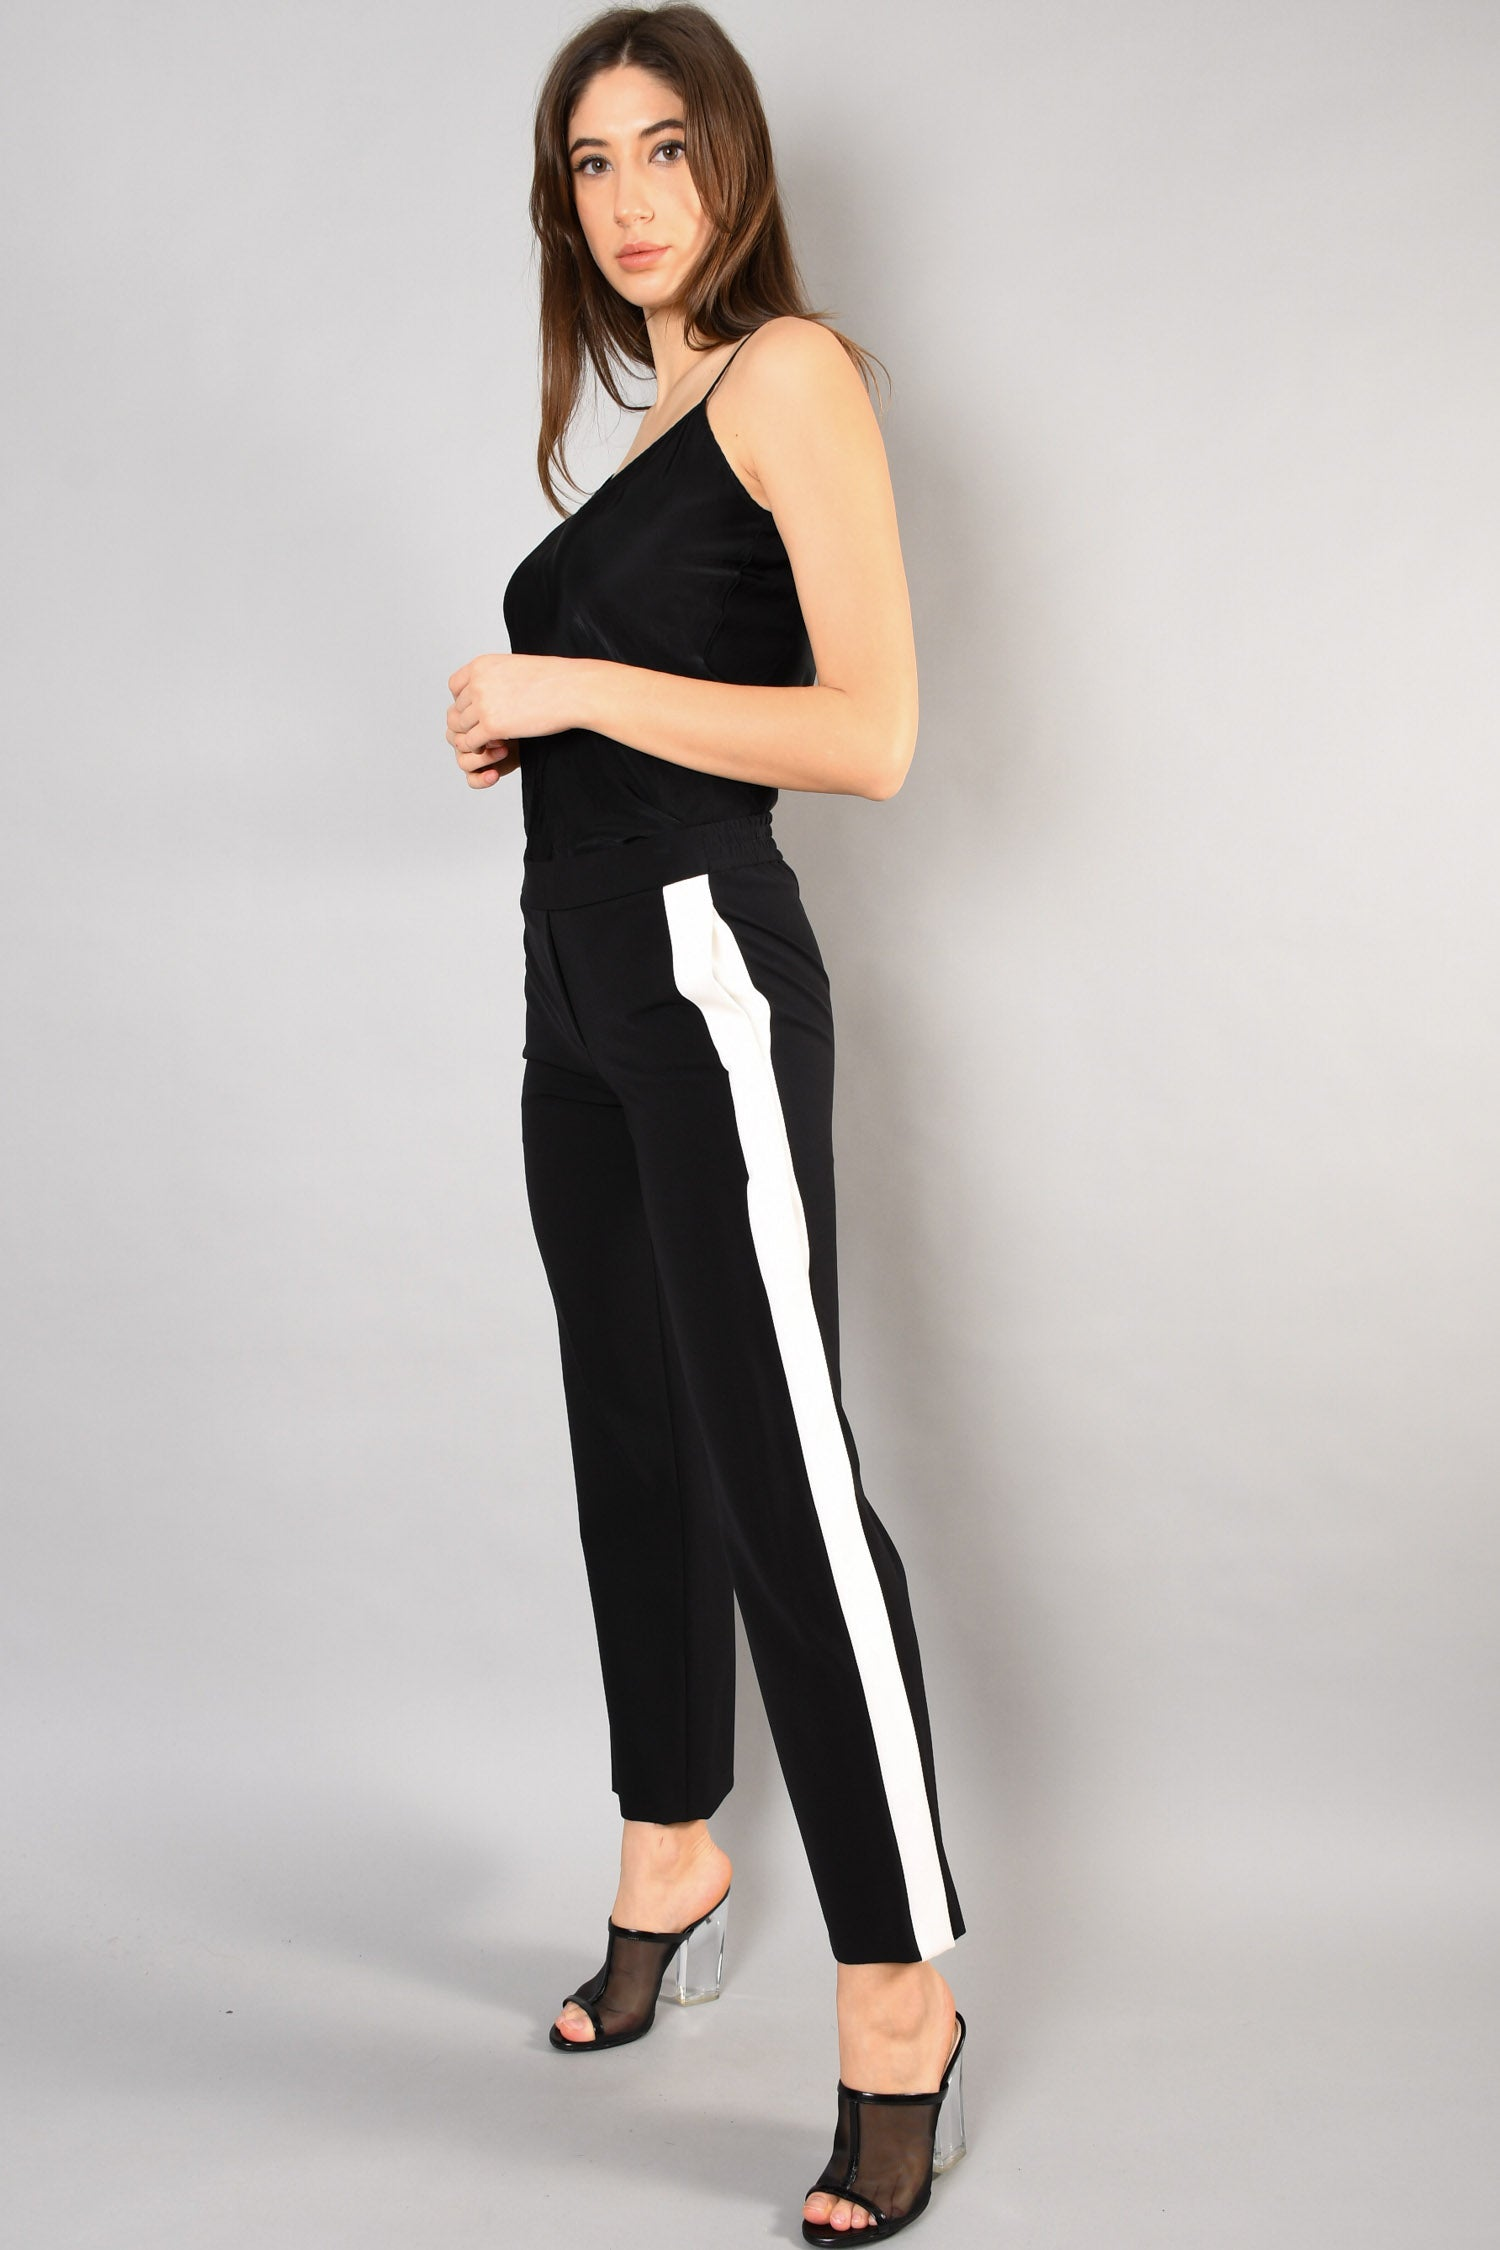 Theory Black Pants w/ White Stripe Size P